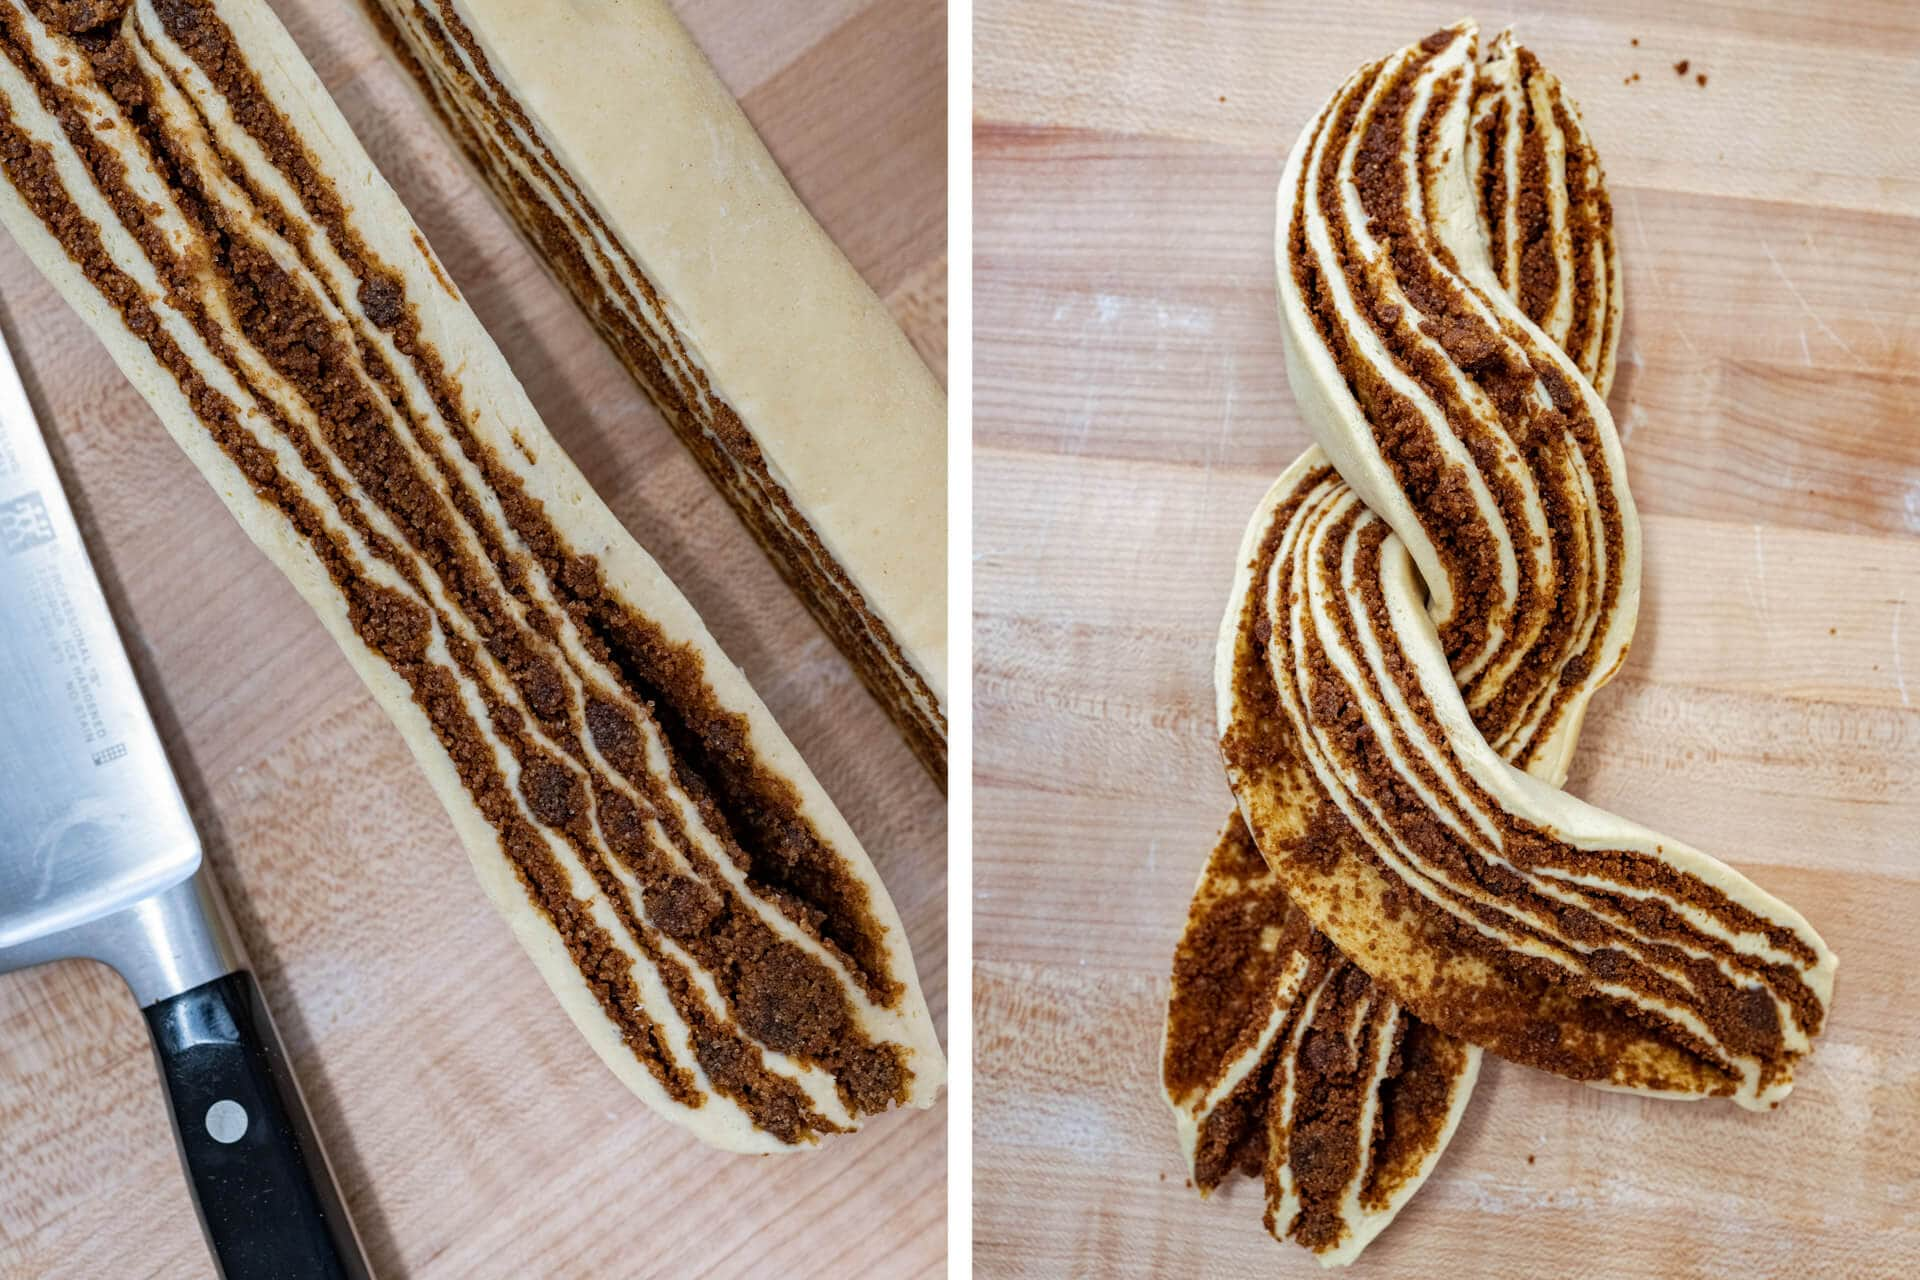 Cutting and braiding babka